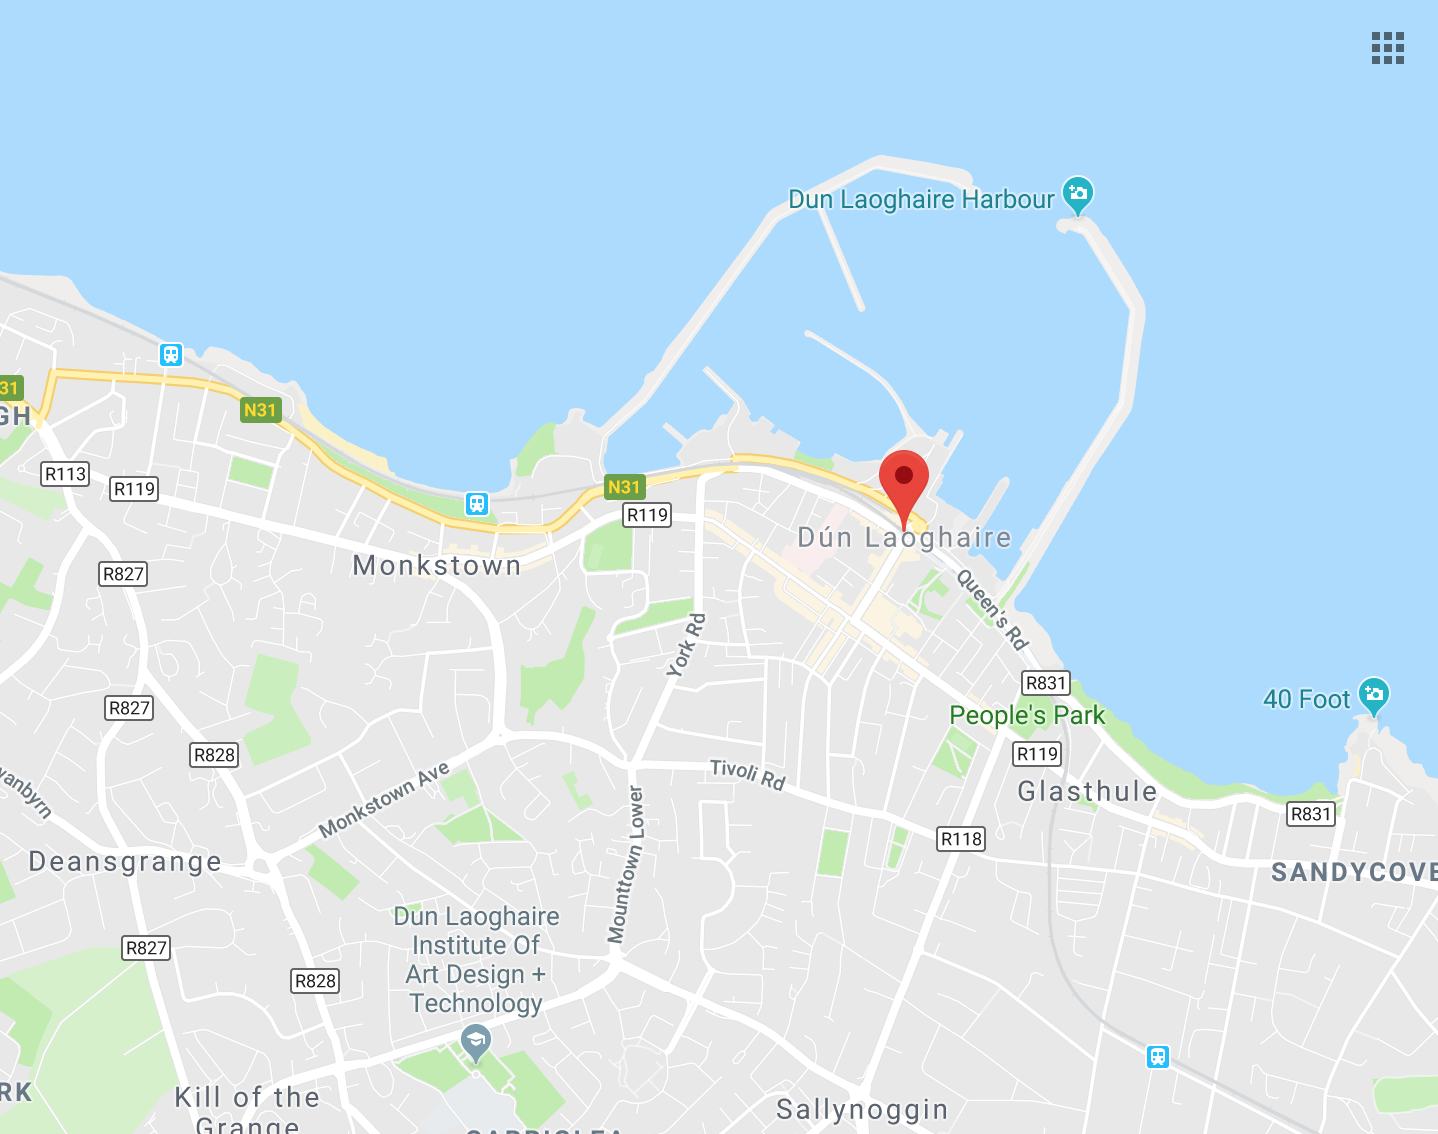 Local Pest Control for Dun Laoghaire & surrounding local areas